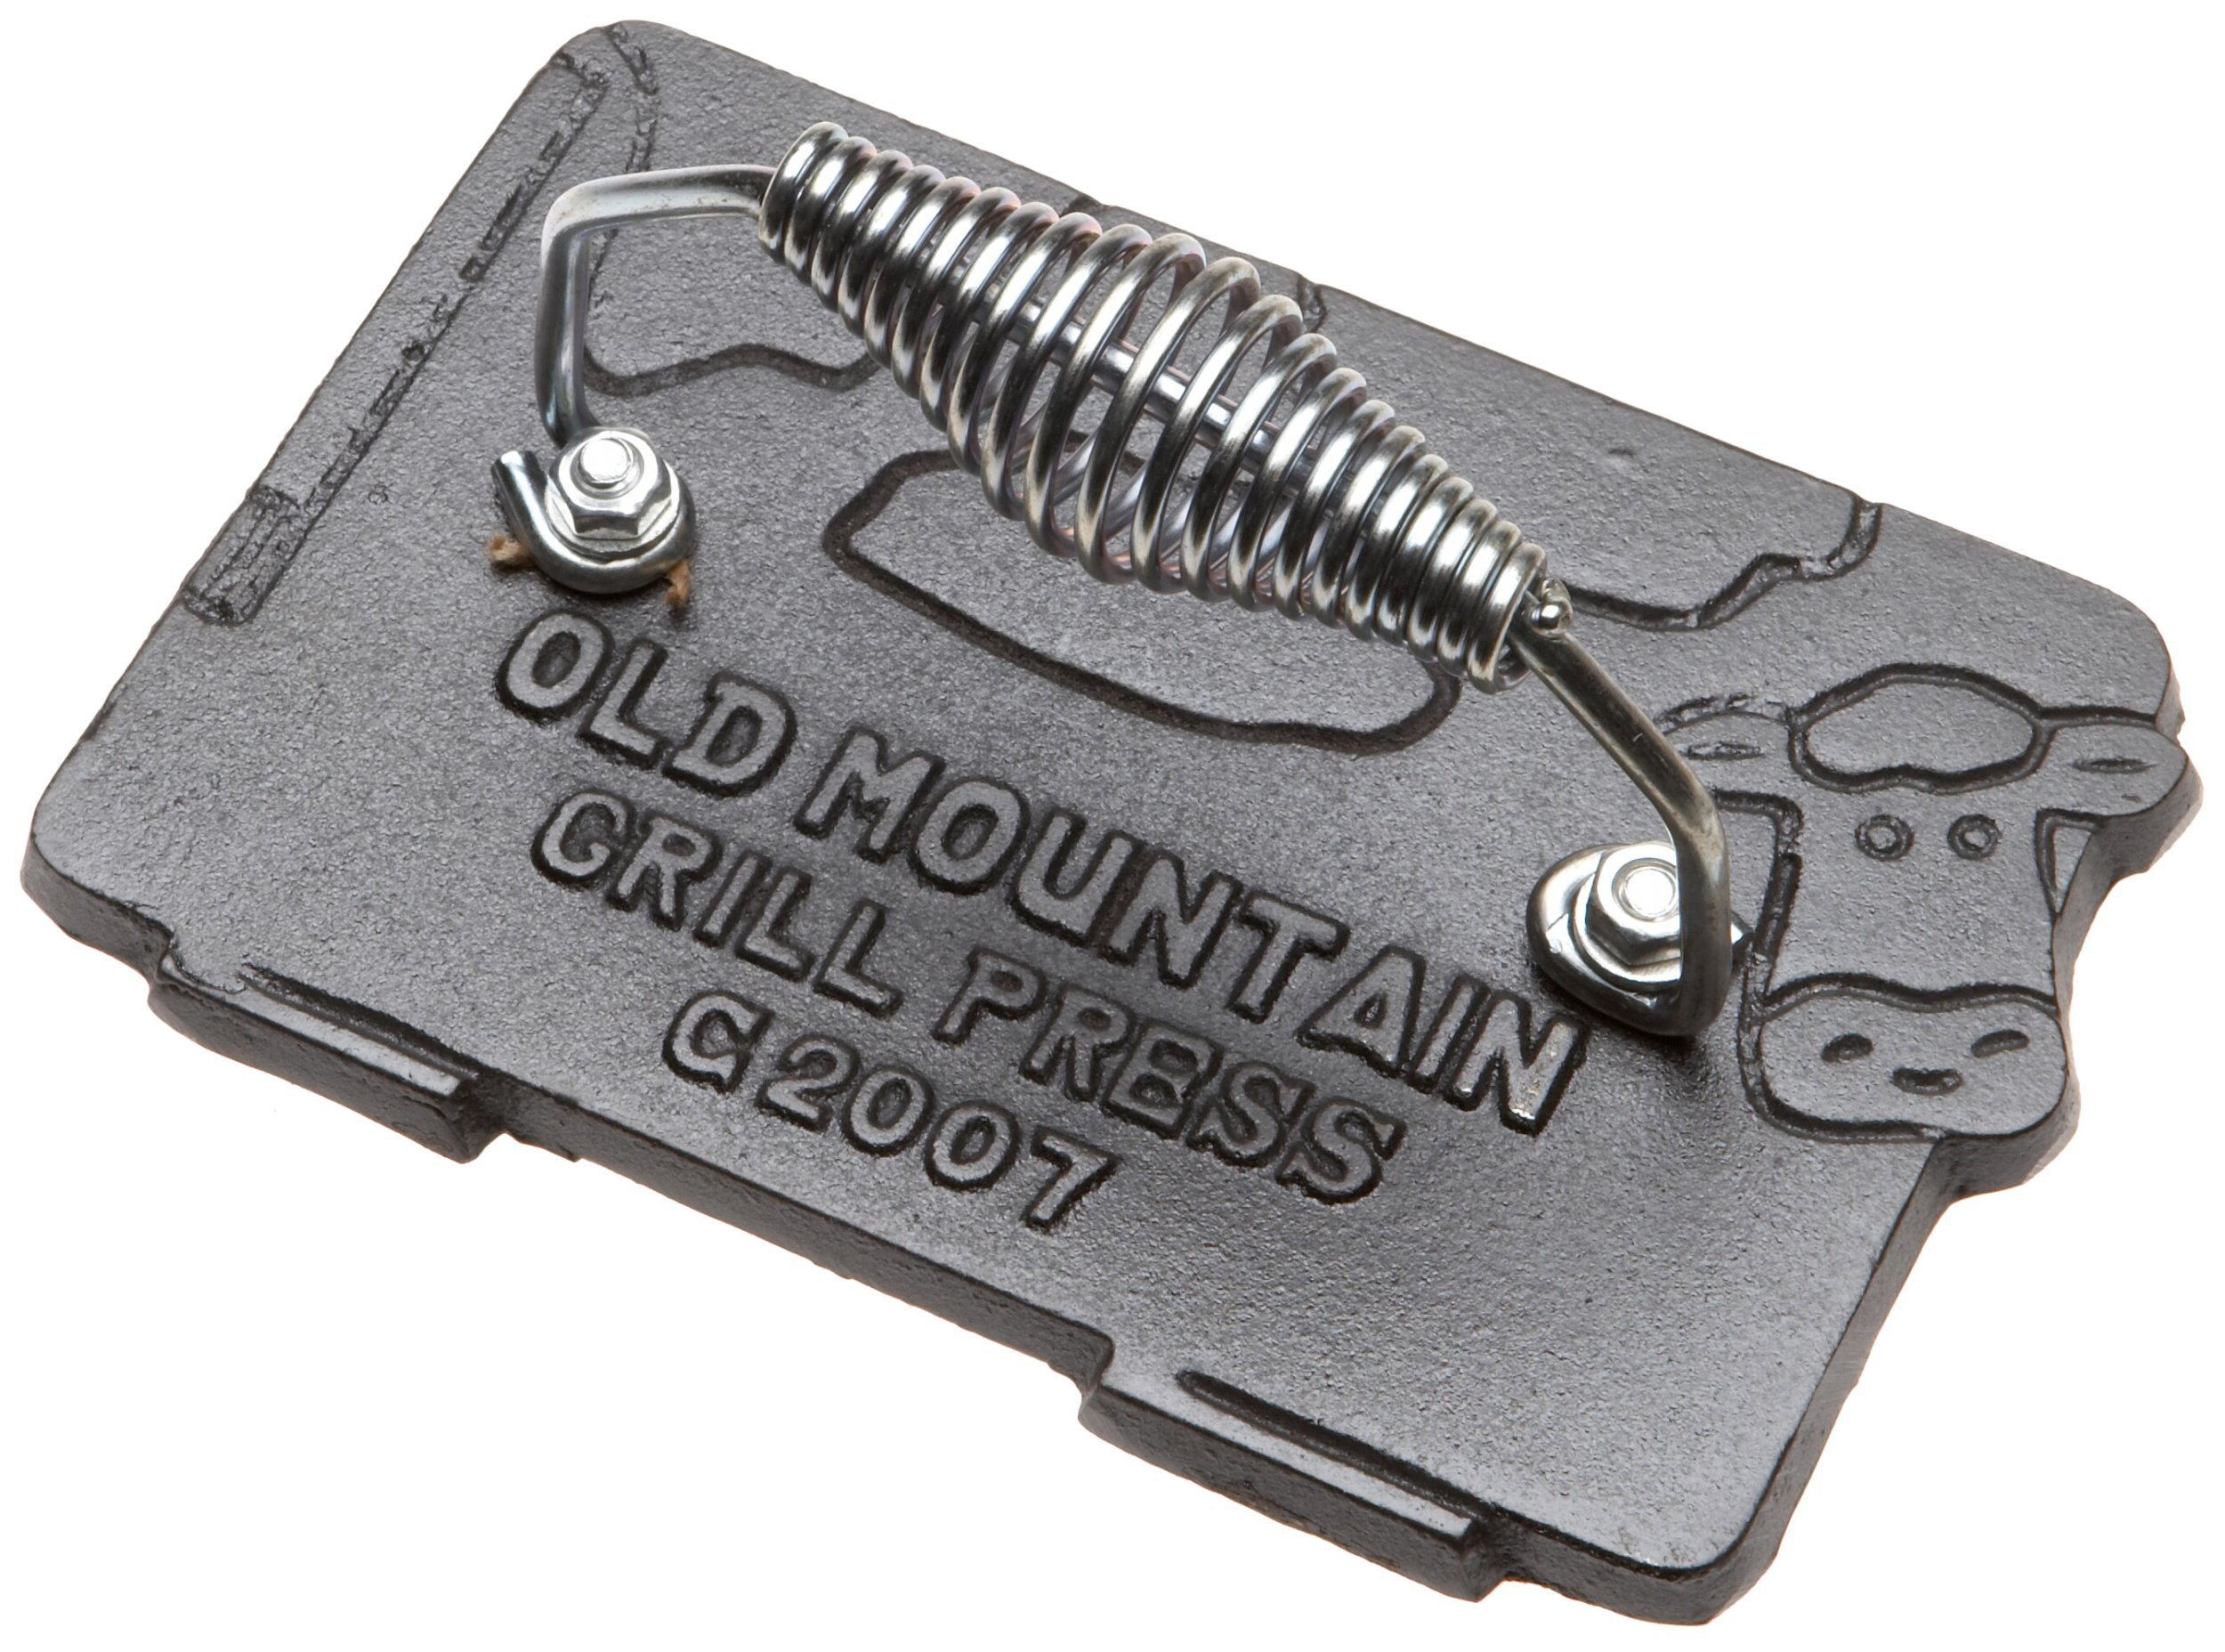 Old Mountain Pre Seasoned 10151 Cow Shaped Bacon/Grill Press, 7 Inch by 4-1/2-Inch by Old Mountain